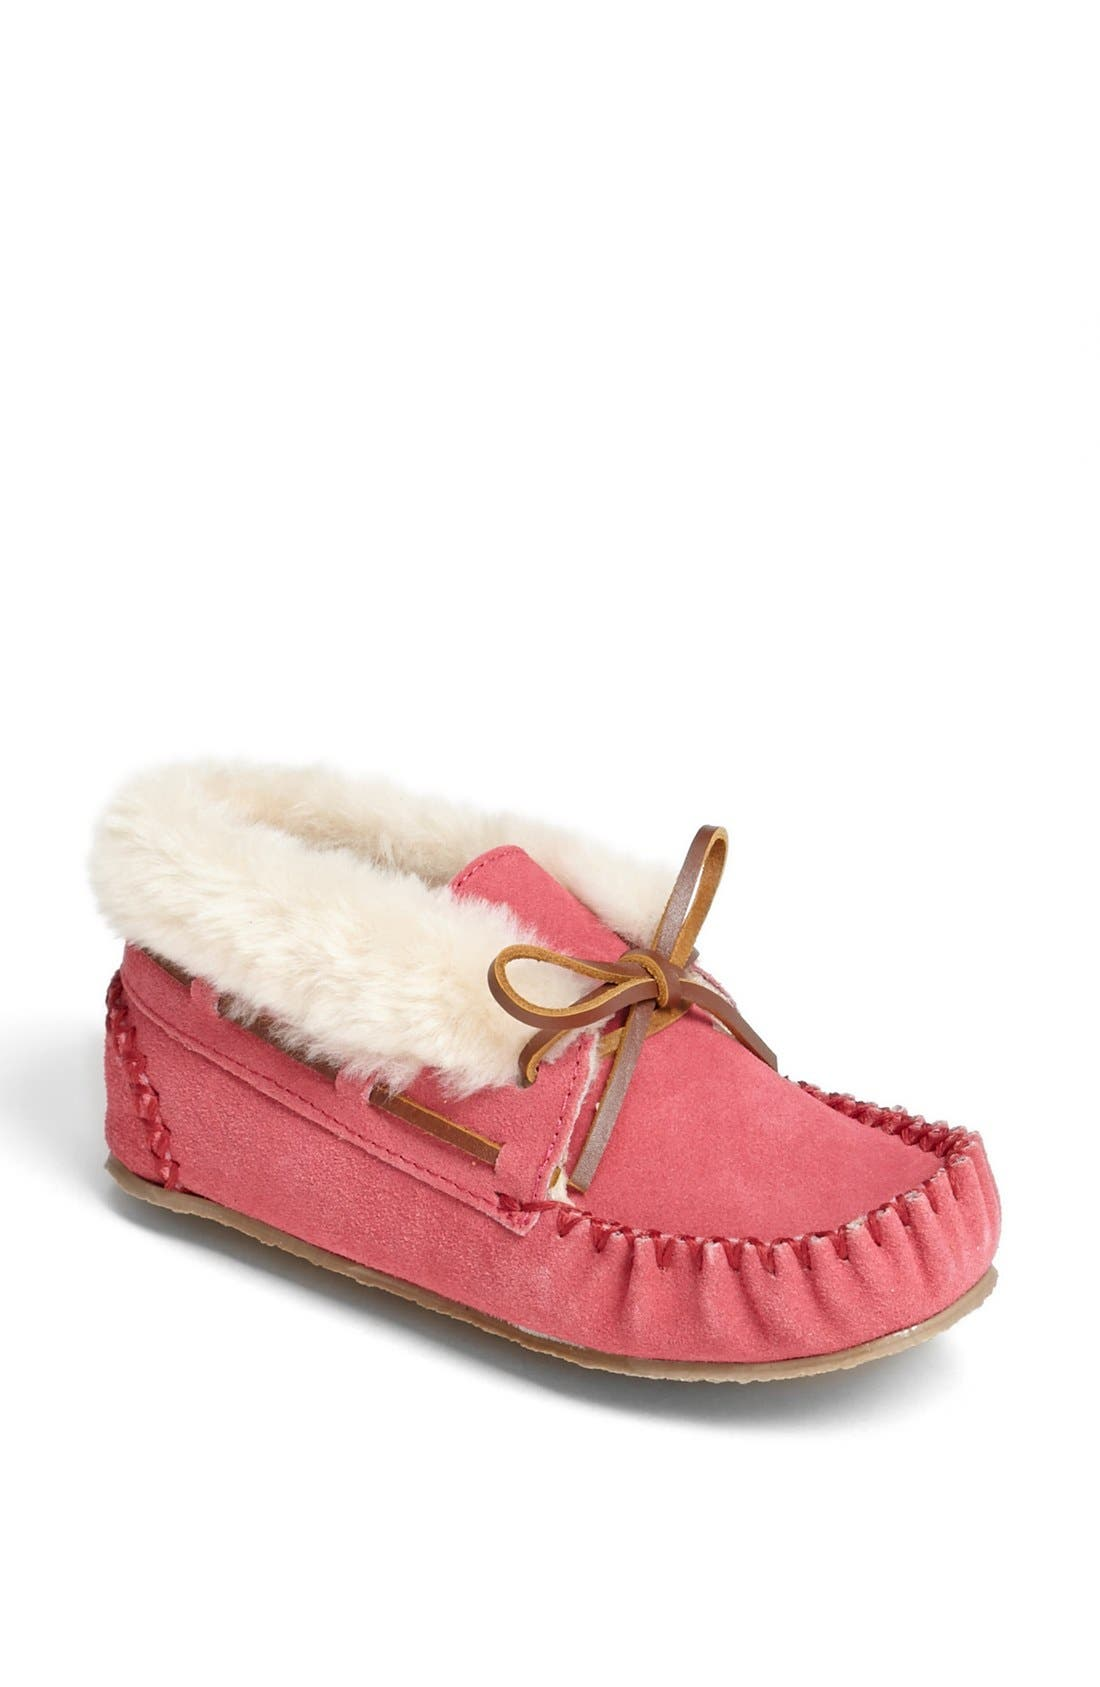 MINNETONKA 'Charley' Bootie, Main, color, HOT PINK